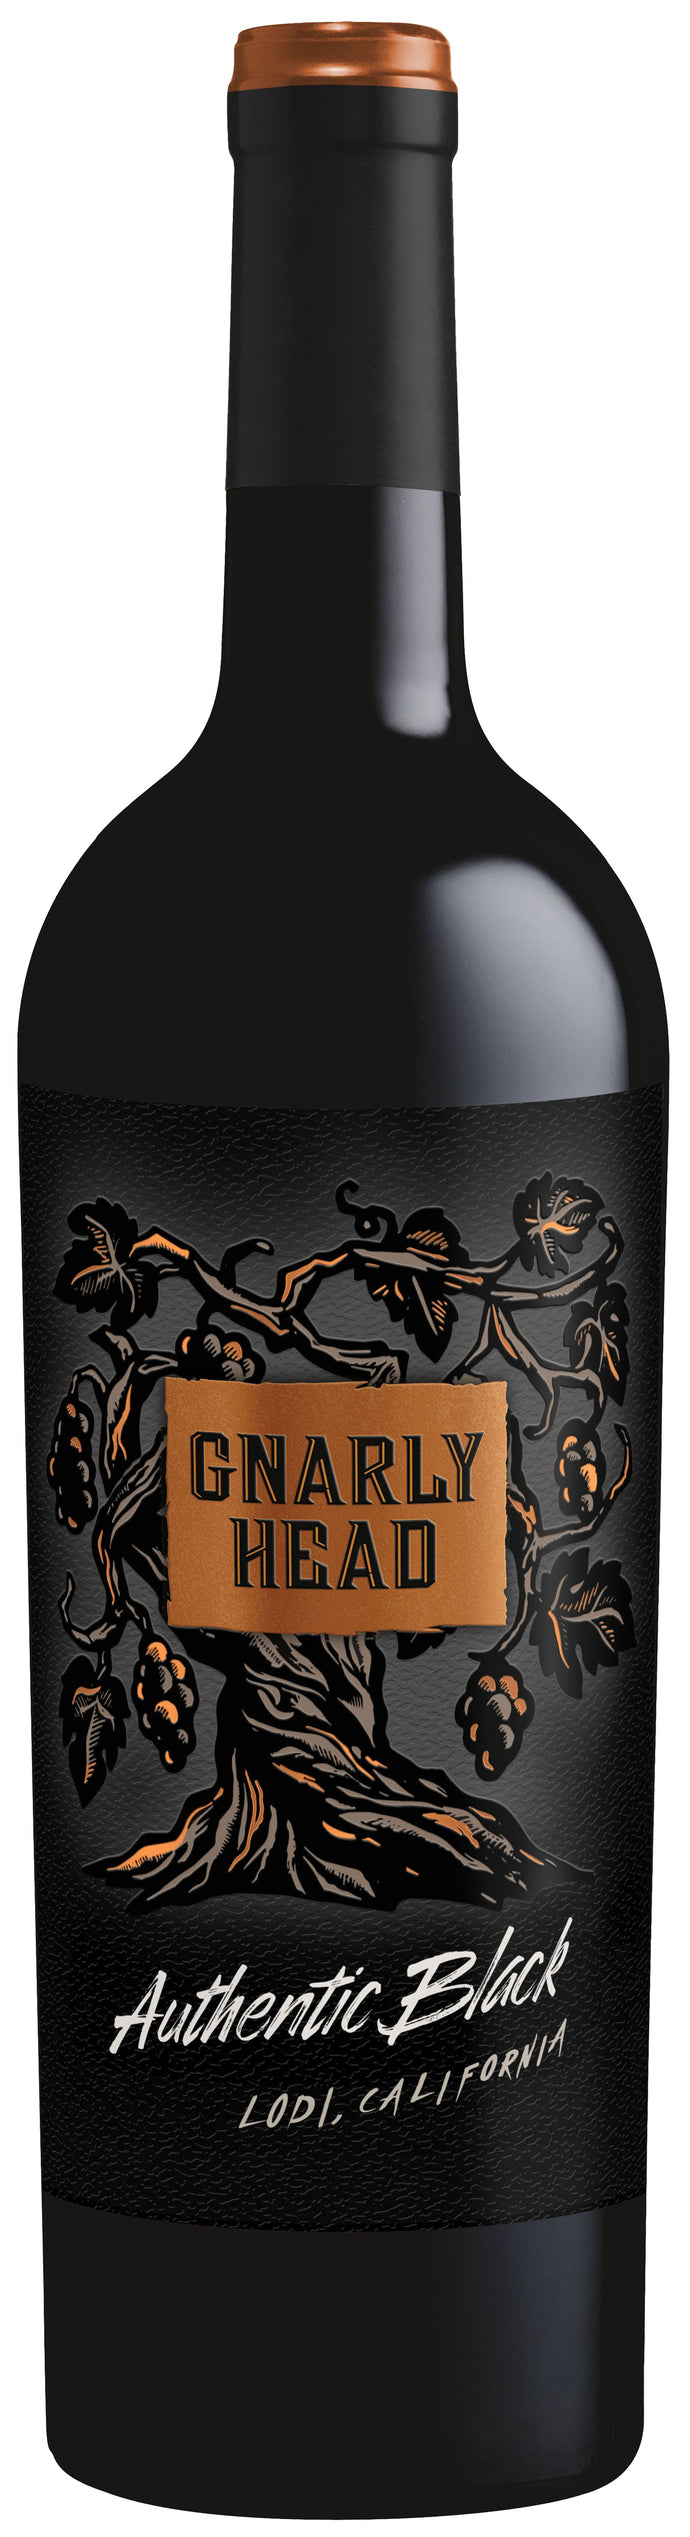 Gnarly Head Authentic Black Red Blend 750mL